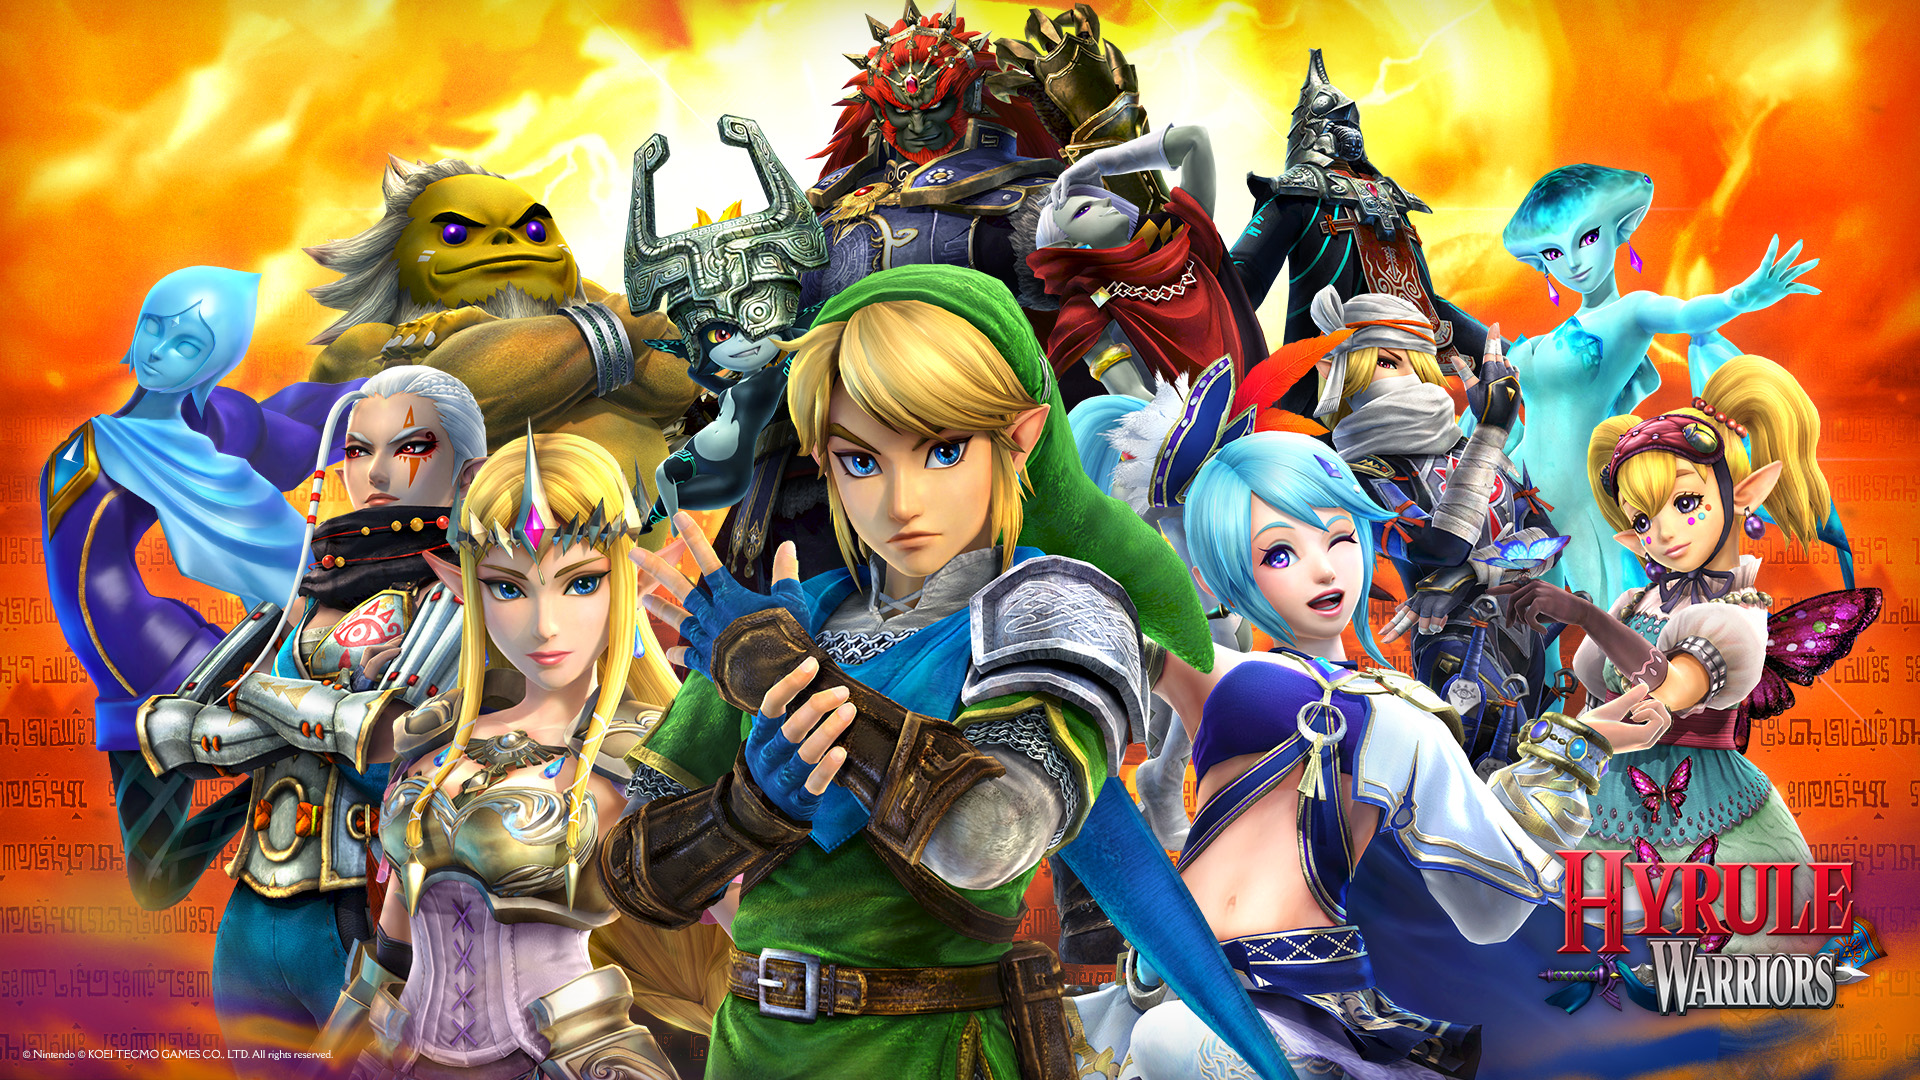 Only New 3ds Can Handle 3d In Hyrule Warriors Legends